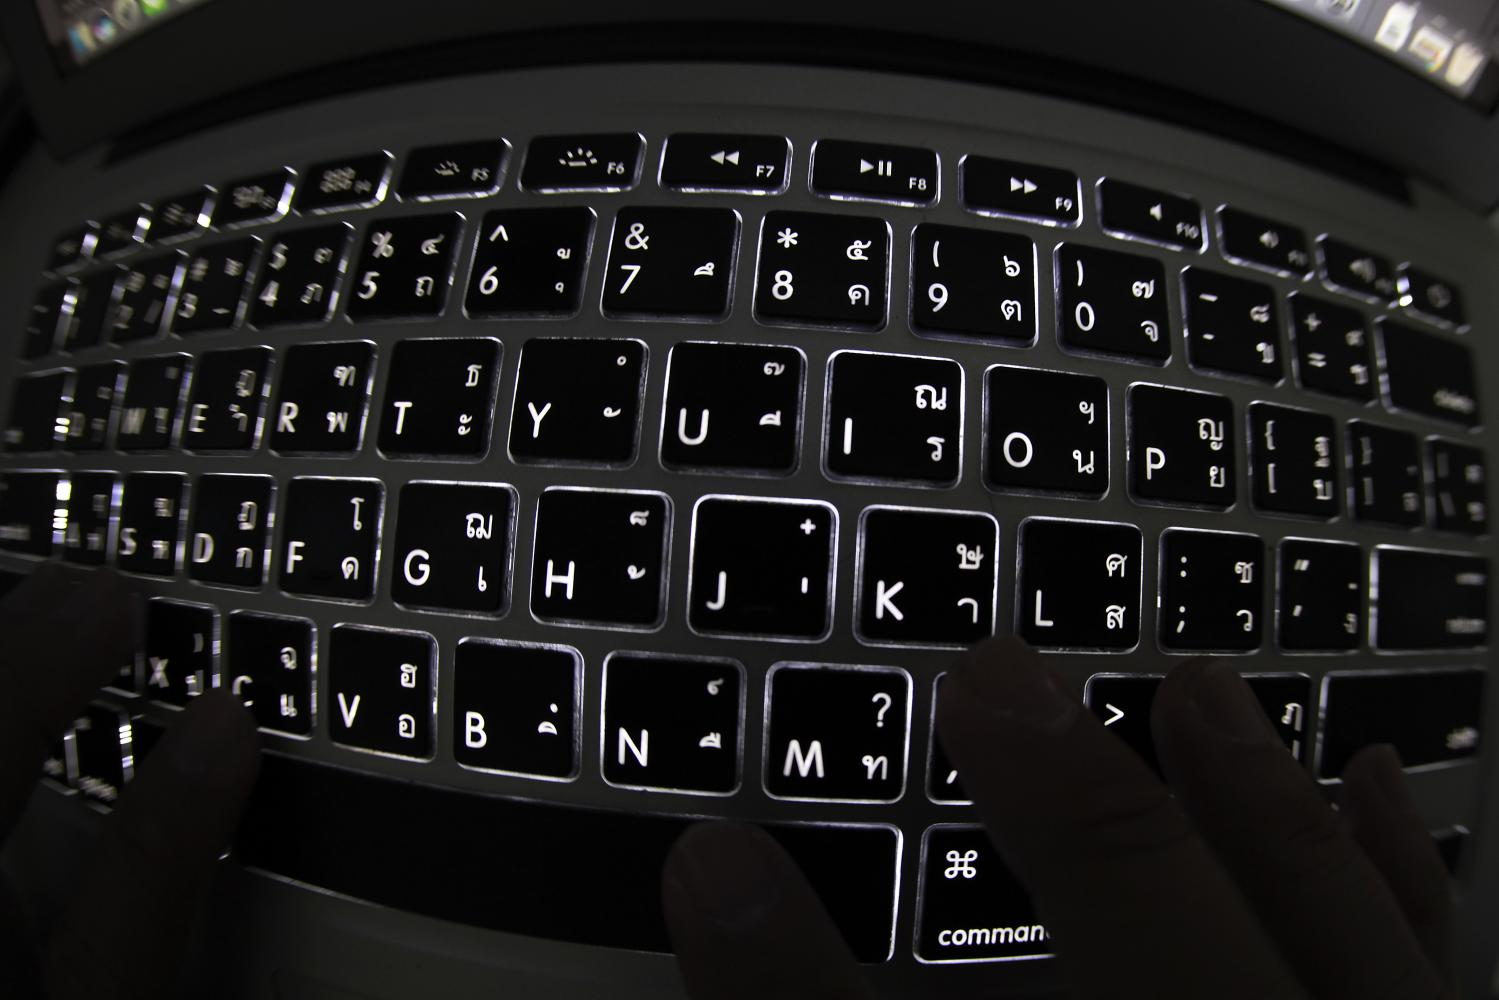 A man types on a computer keyboard as cybersecurity experts warn of an increase in cybercrimes arising from 5G. (Photo by Thanarak Khunton)